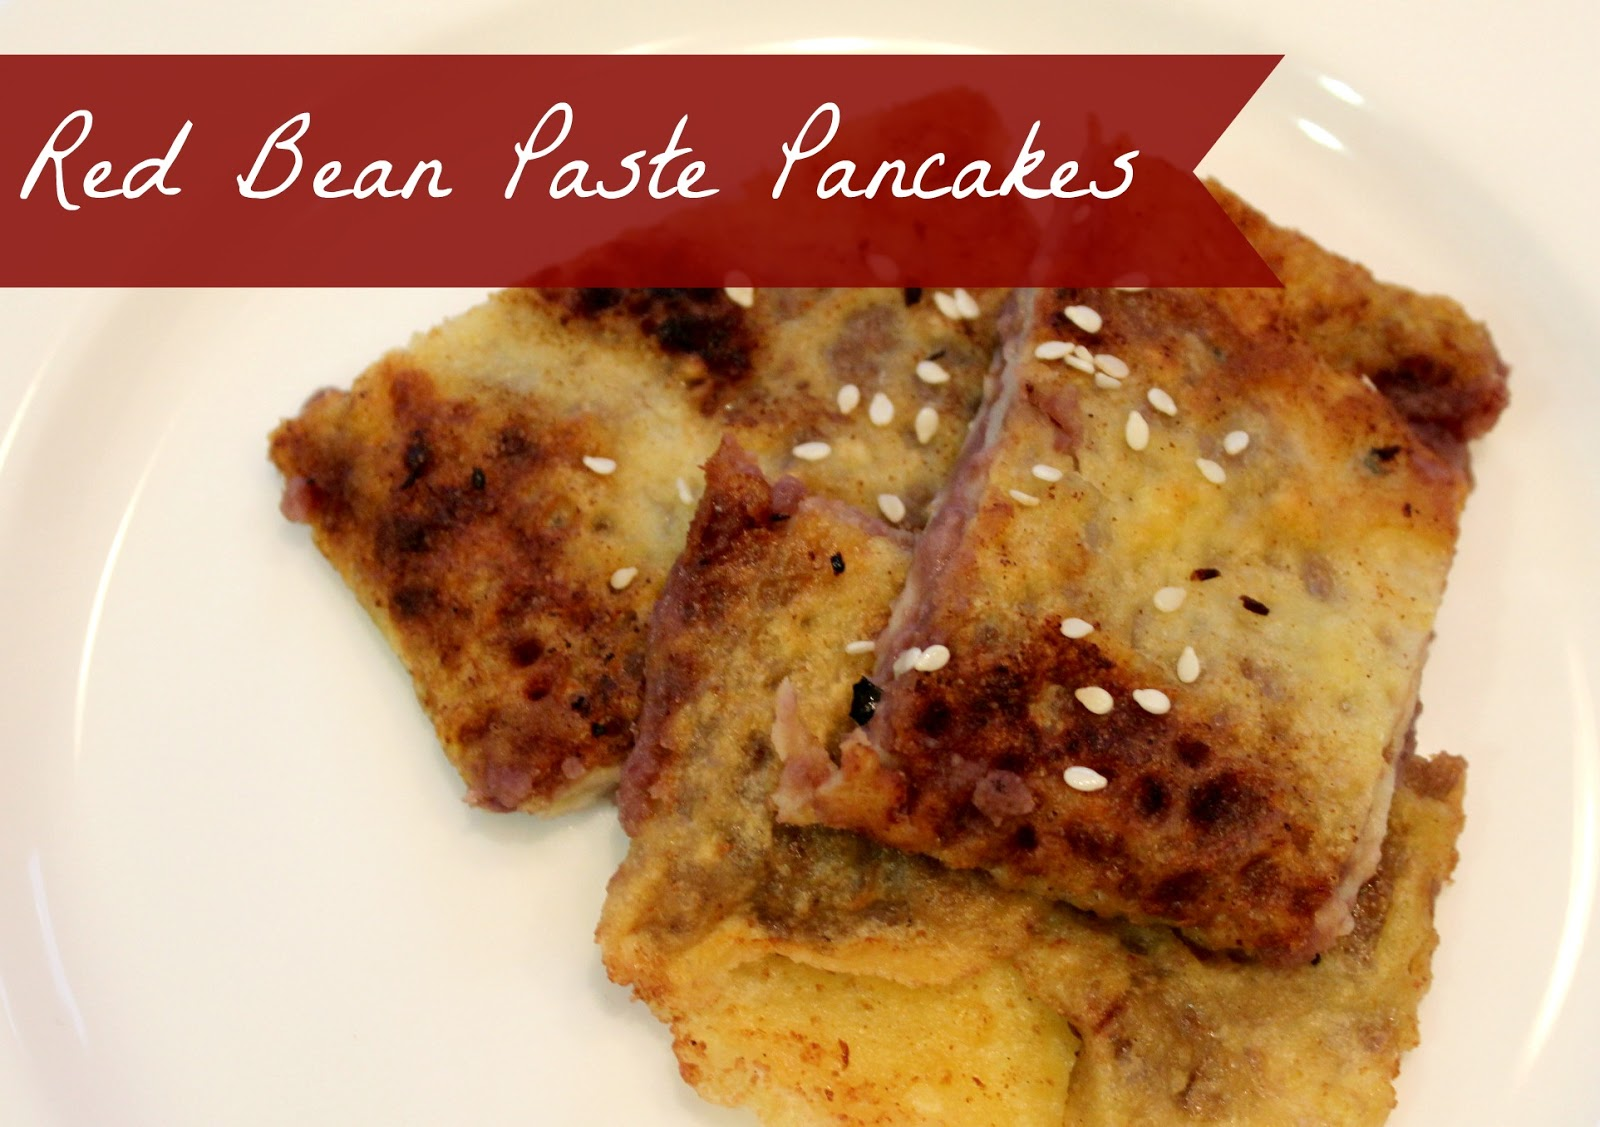 Marie's Pastiche: Recipe: Red Bean Paste Pancakes